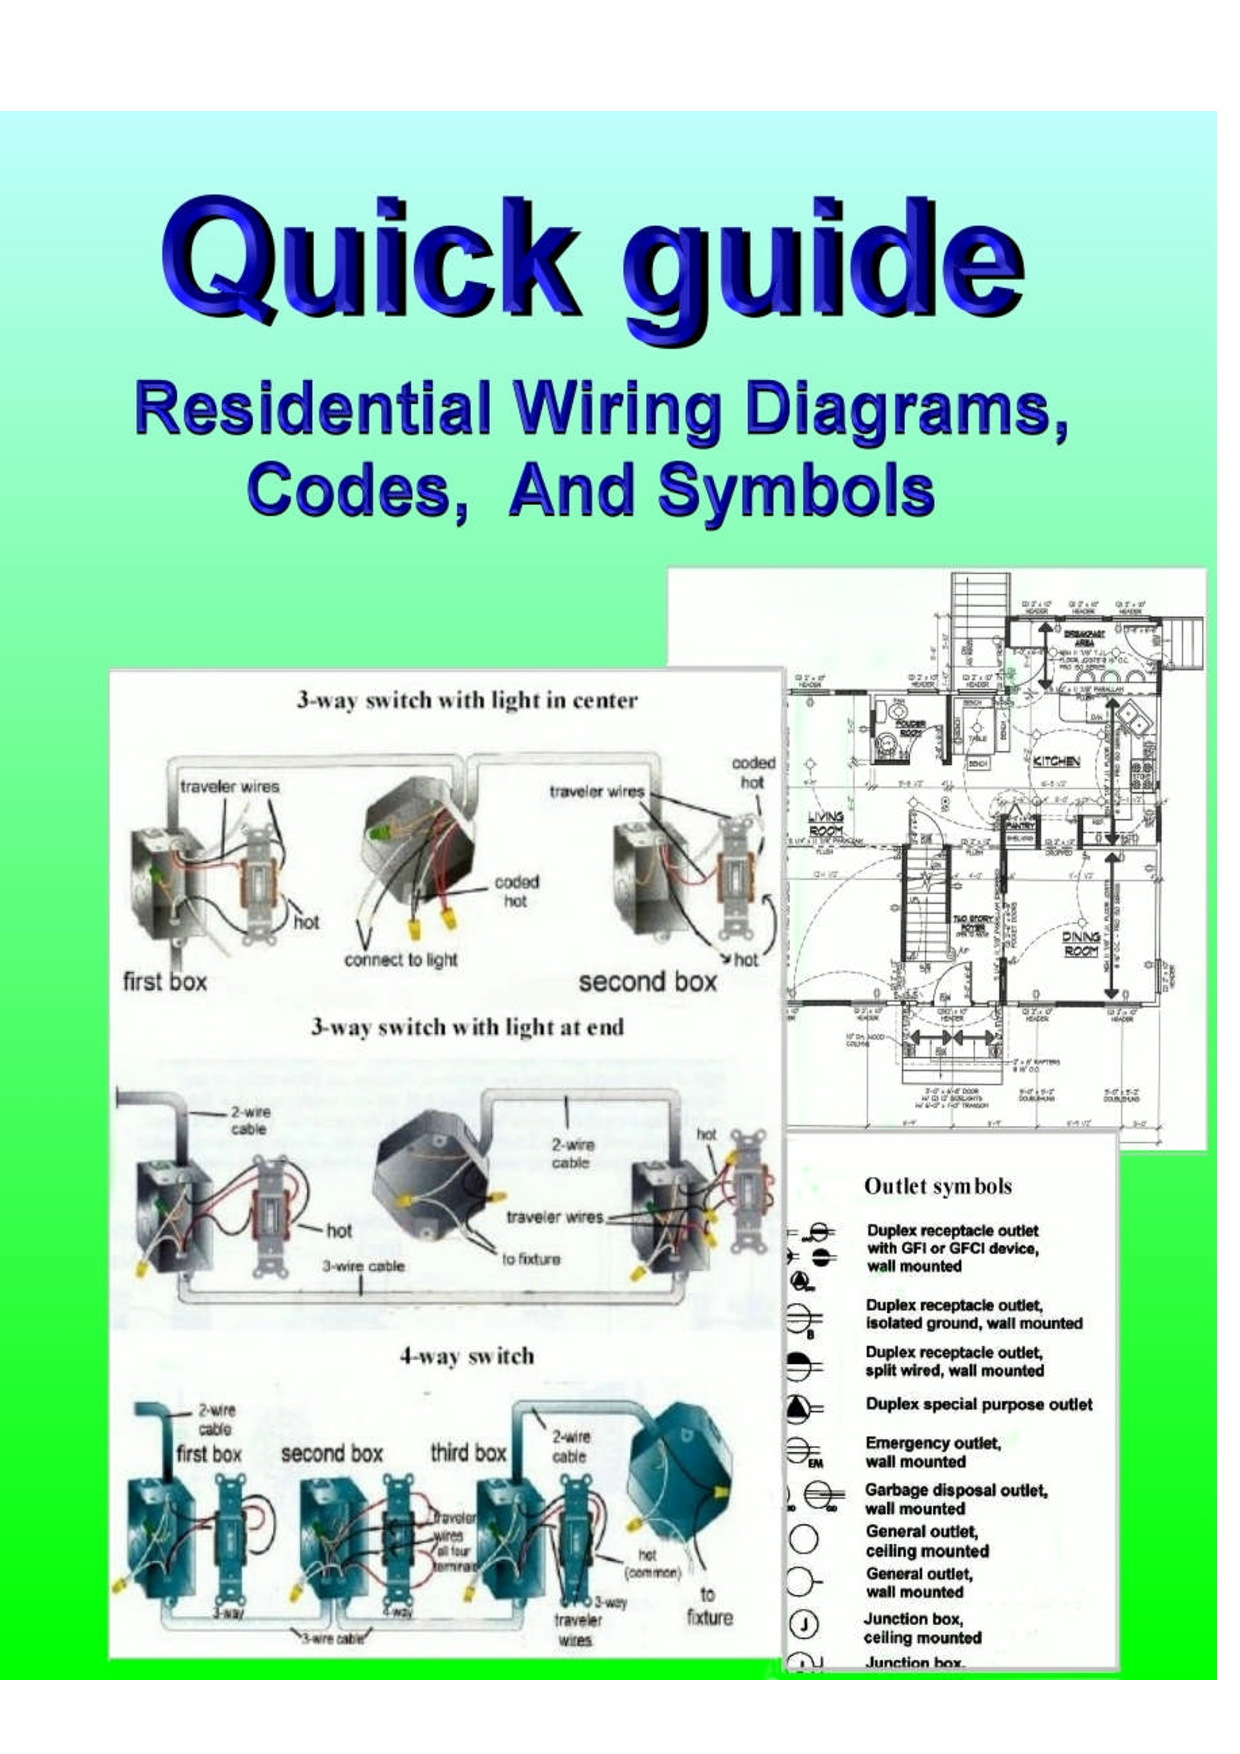 home electrical wiring diagrams pdf download legal documents 39 multiple light switch wiring diagrams common household wiring diagrams [ 1240 x 1754 Pixel ]